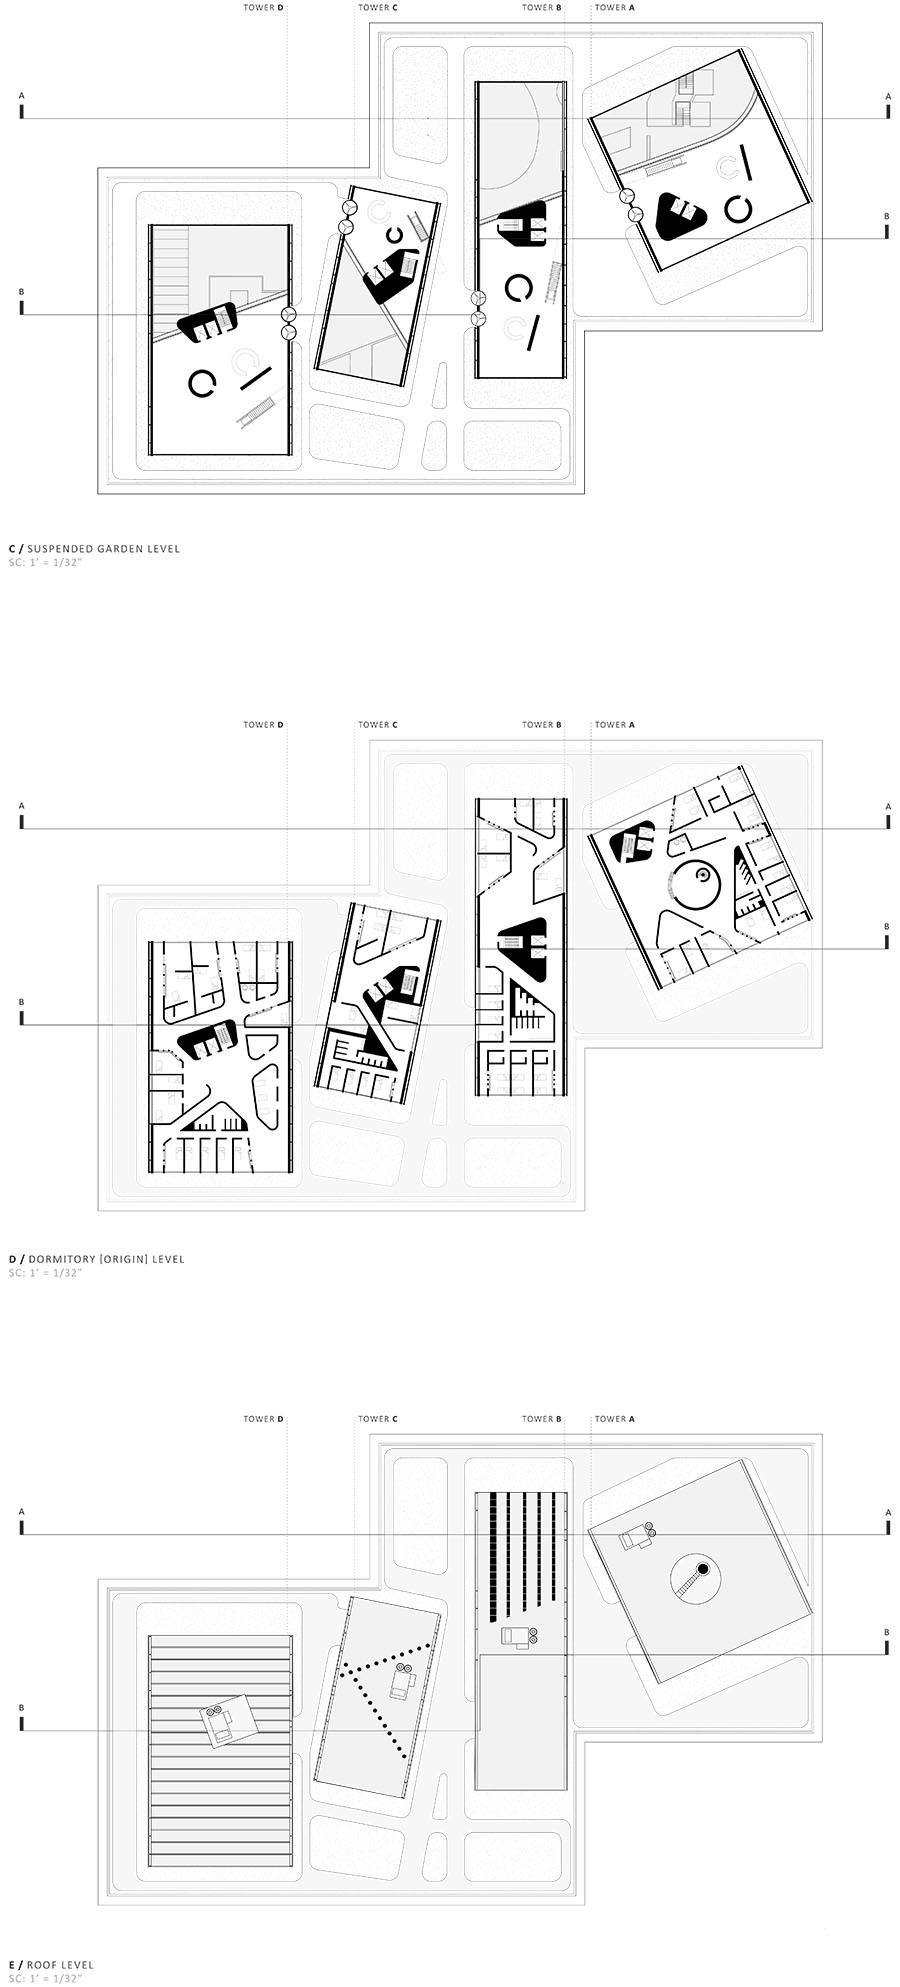 4_Tower Plans